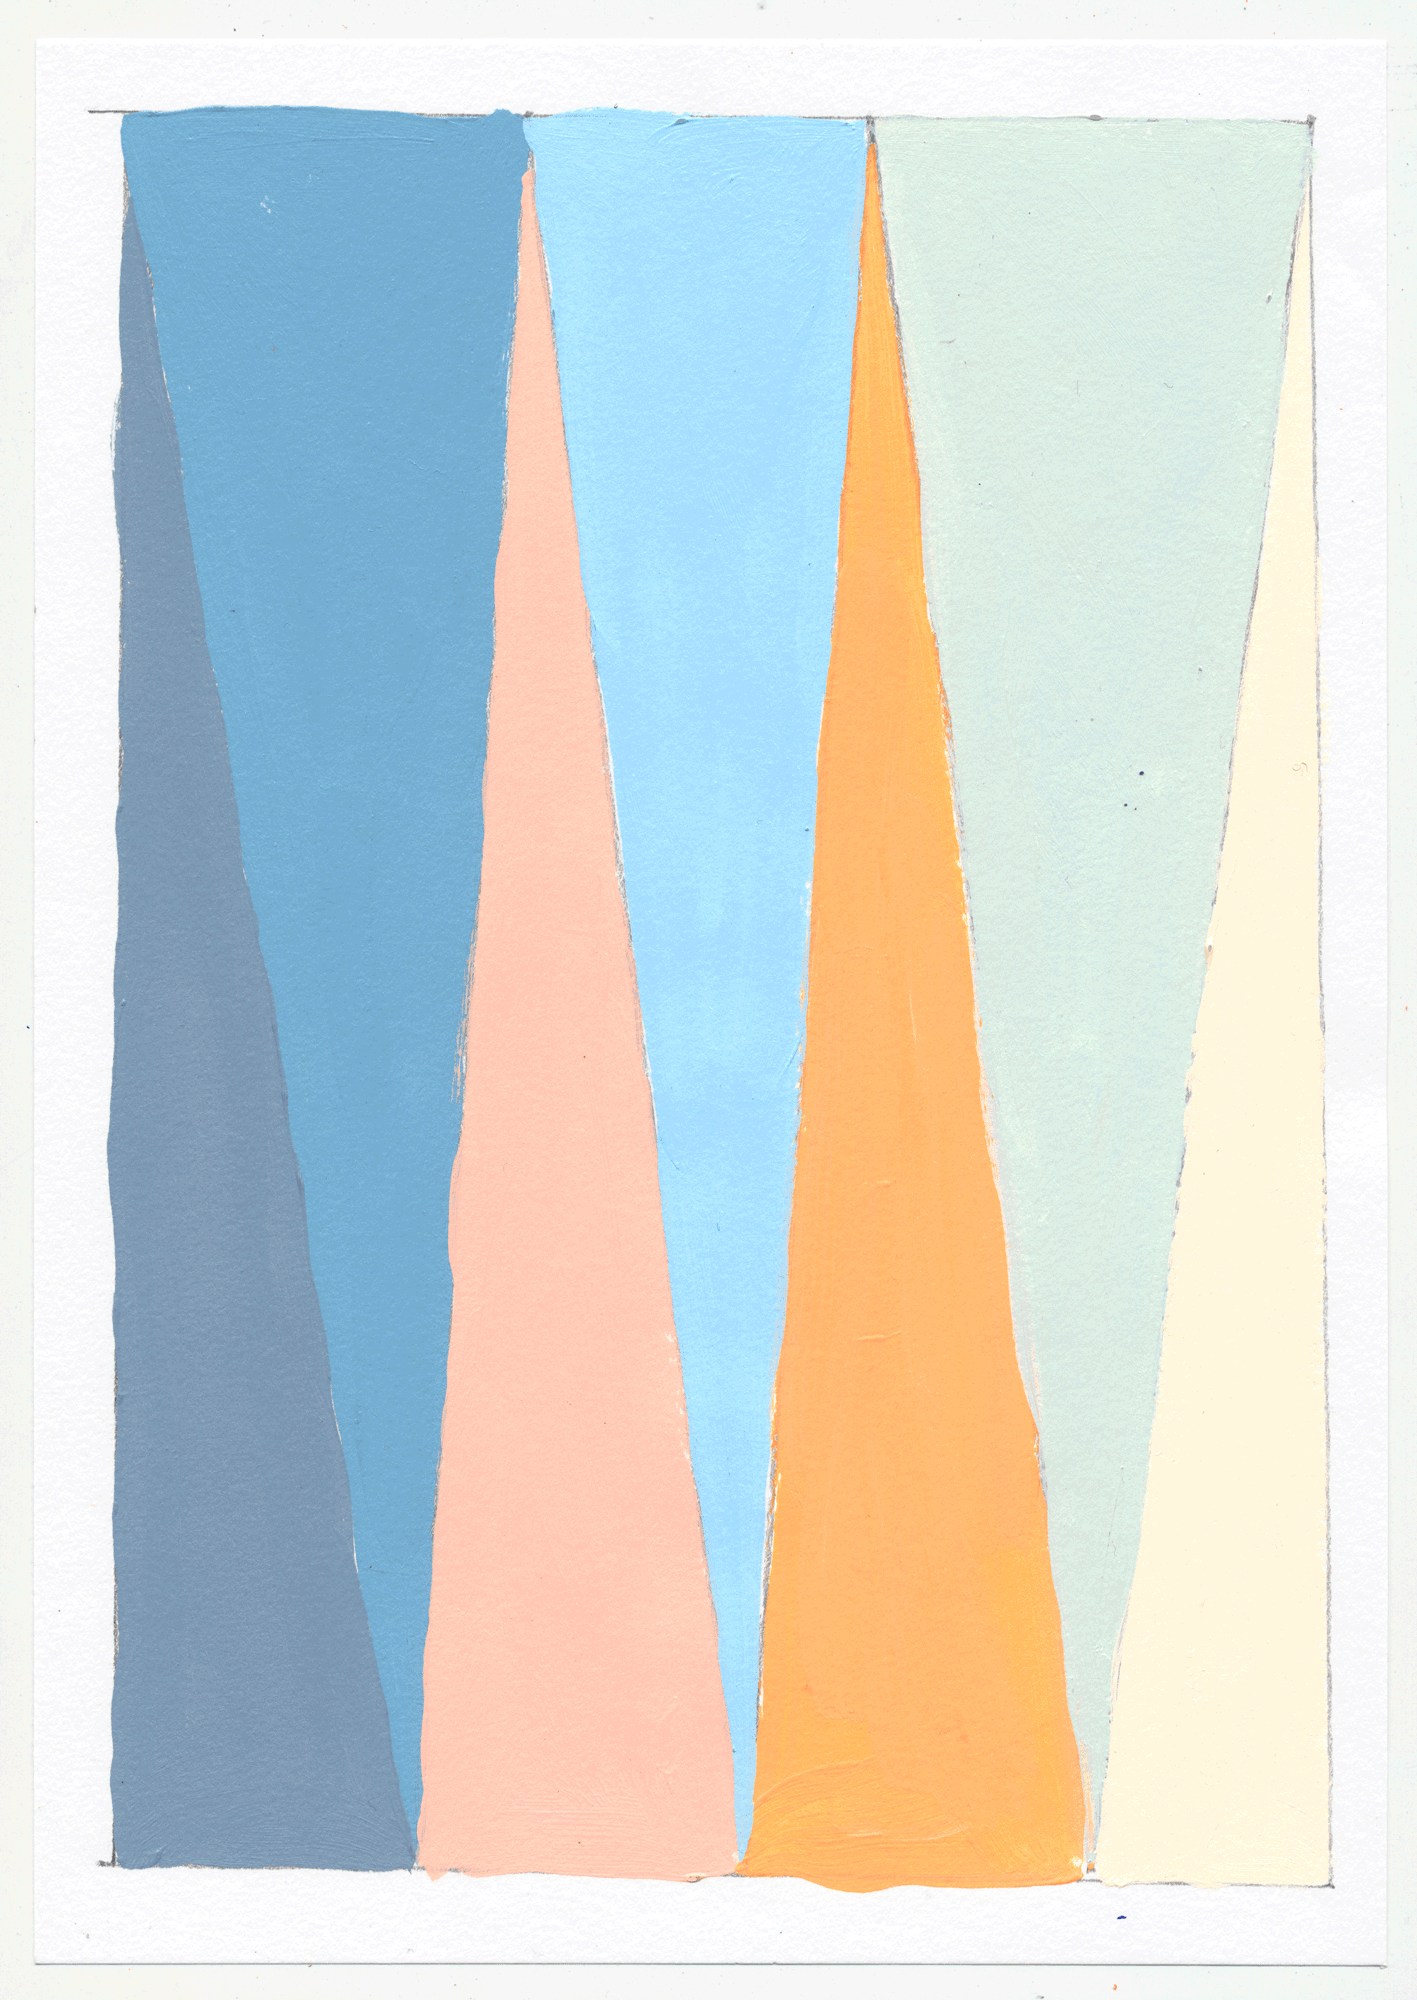 "NY17#27 10"" X 7"", acrylic on paper, 2017  available at Etsy   again with color studies! 3 sets of 3. using a primary color & its' complement to create subtle variations & muted colors."